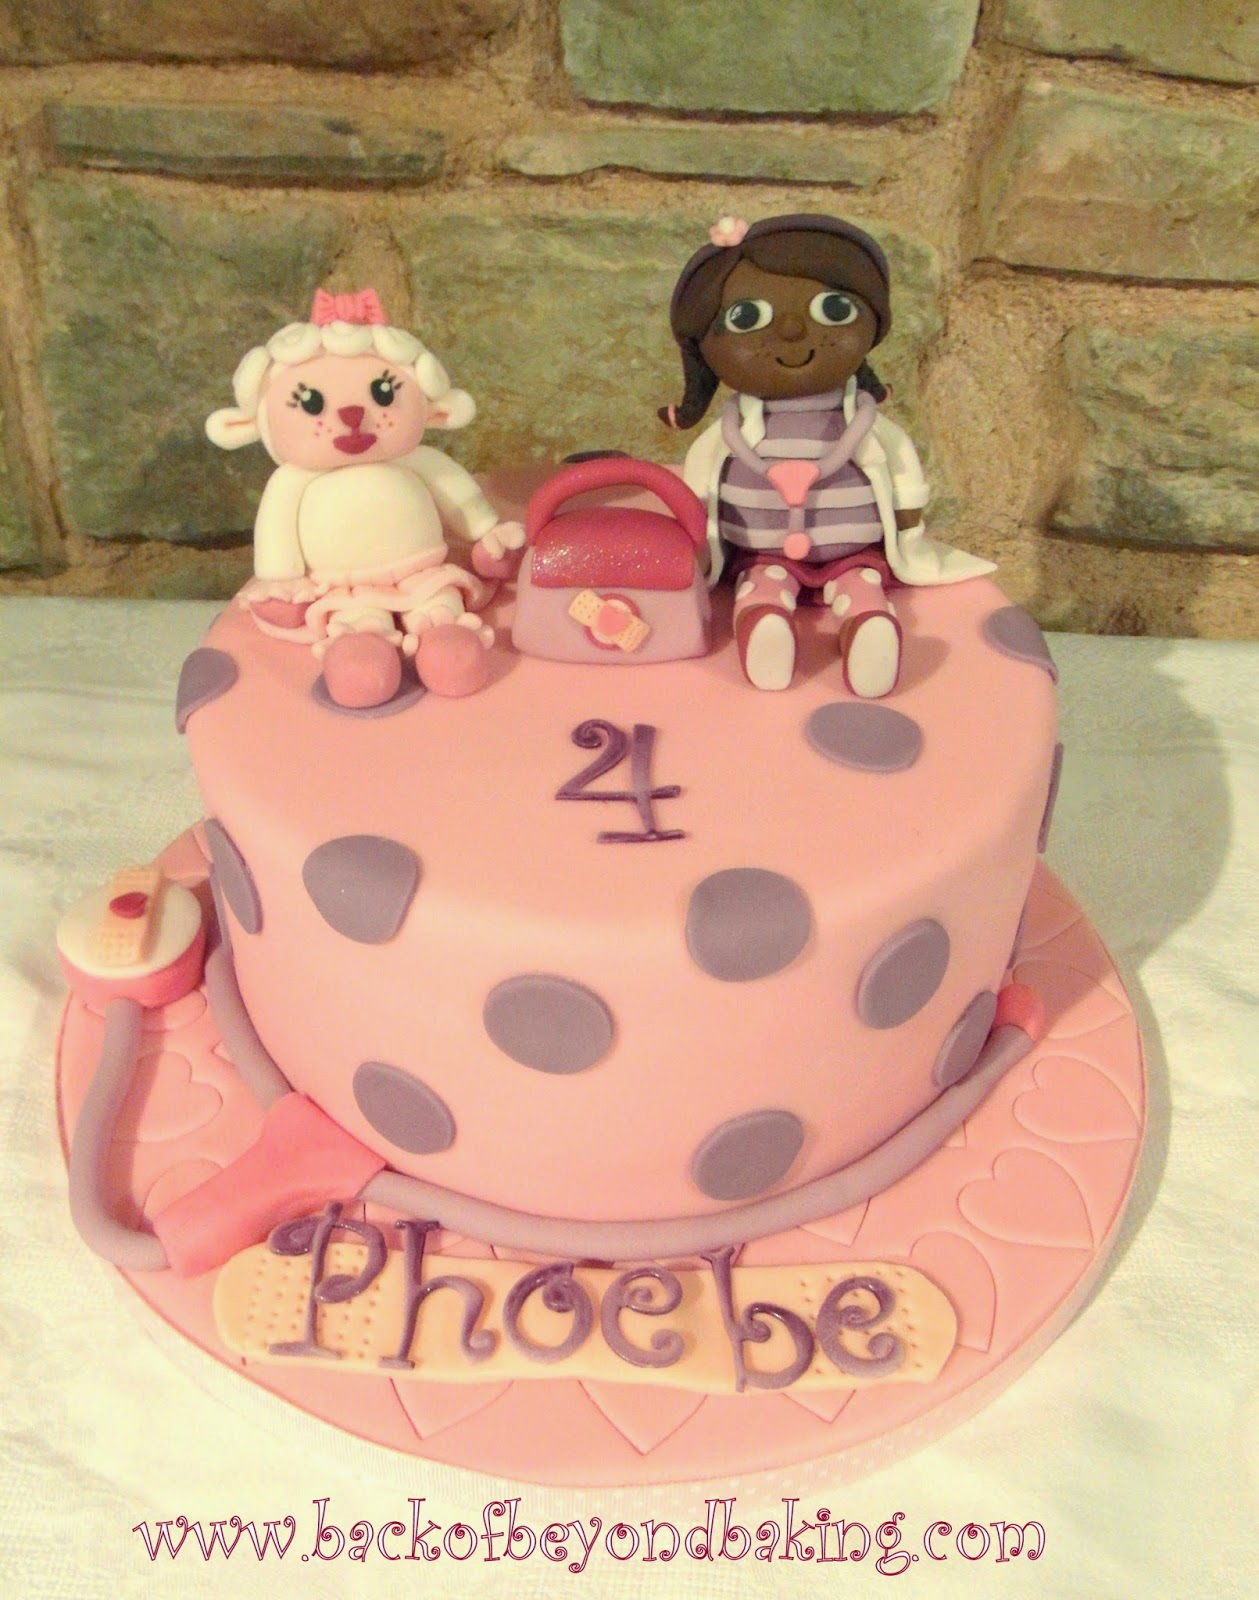 Doc McStuffins and Lamby birthday cake